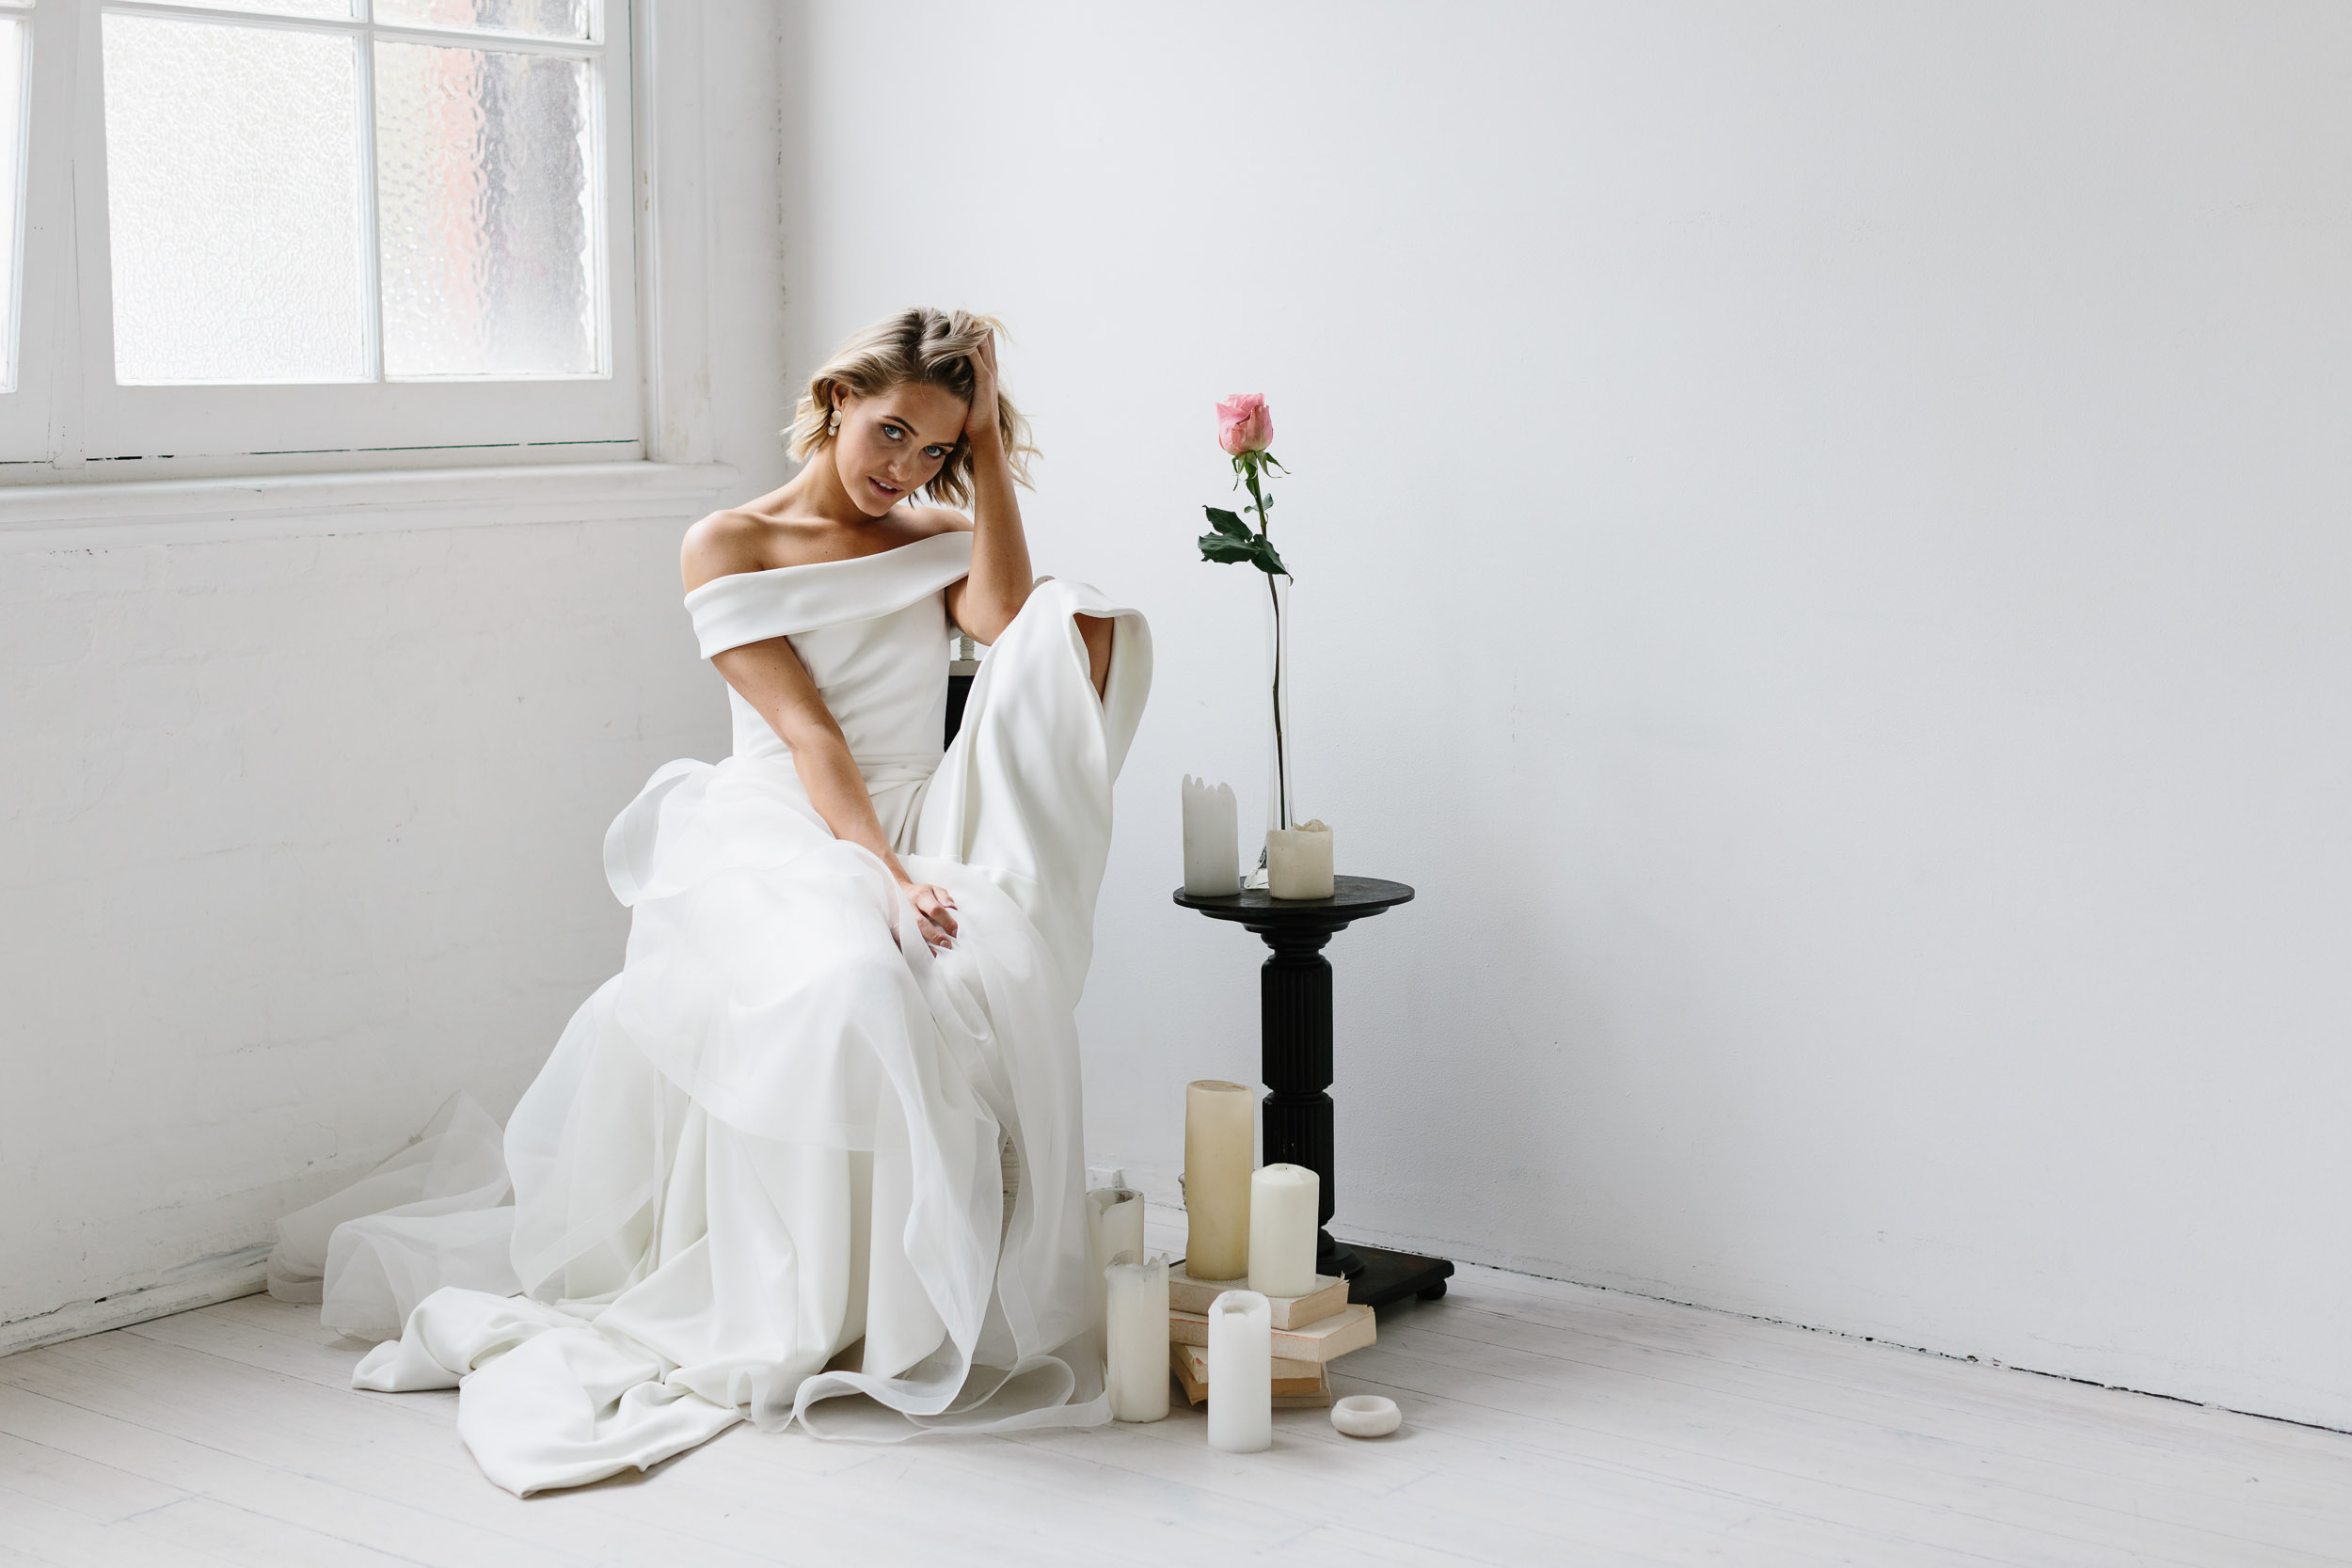 Kas-Richards-Editorial-Photographer-Amelie-George-Bridal-Jewellery-Melbourne-30.jpg